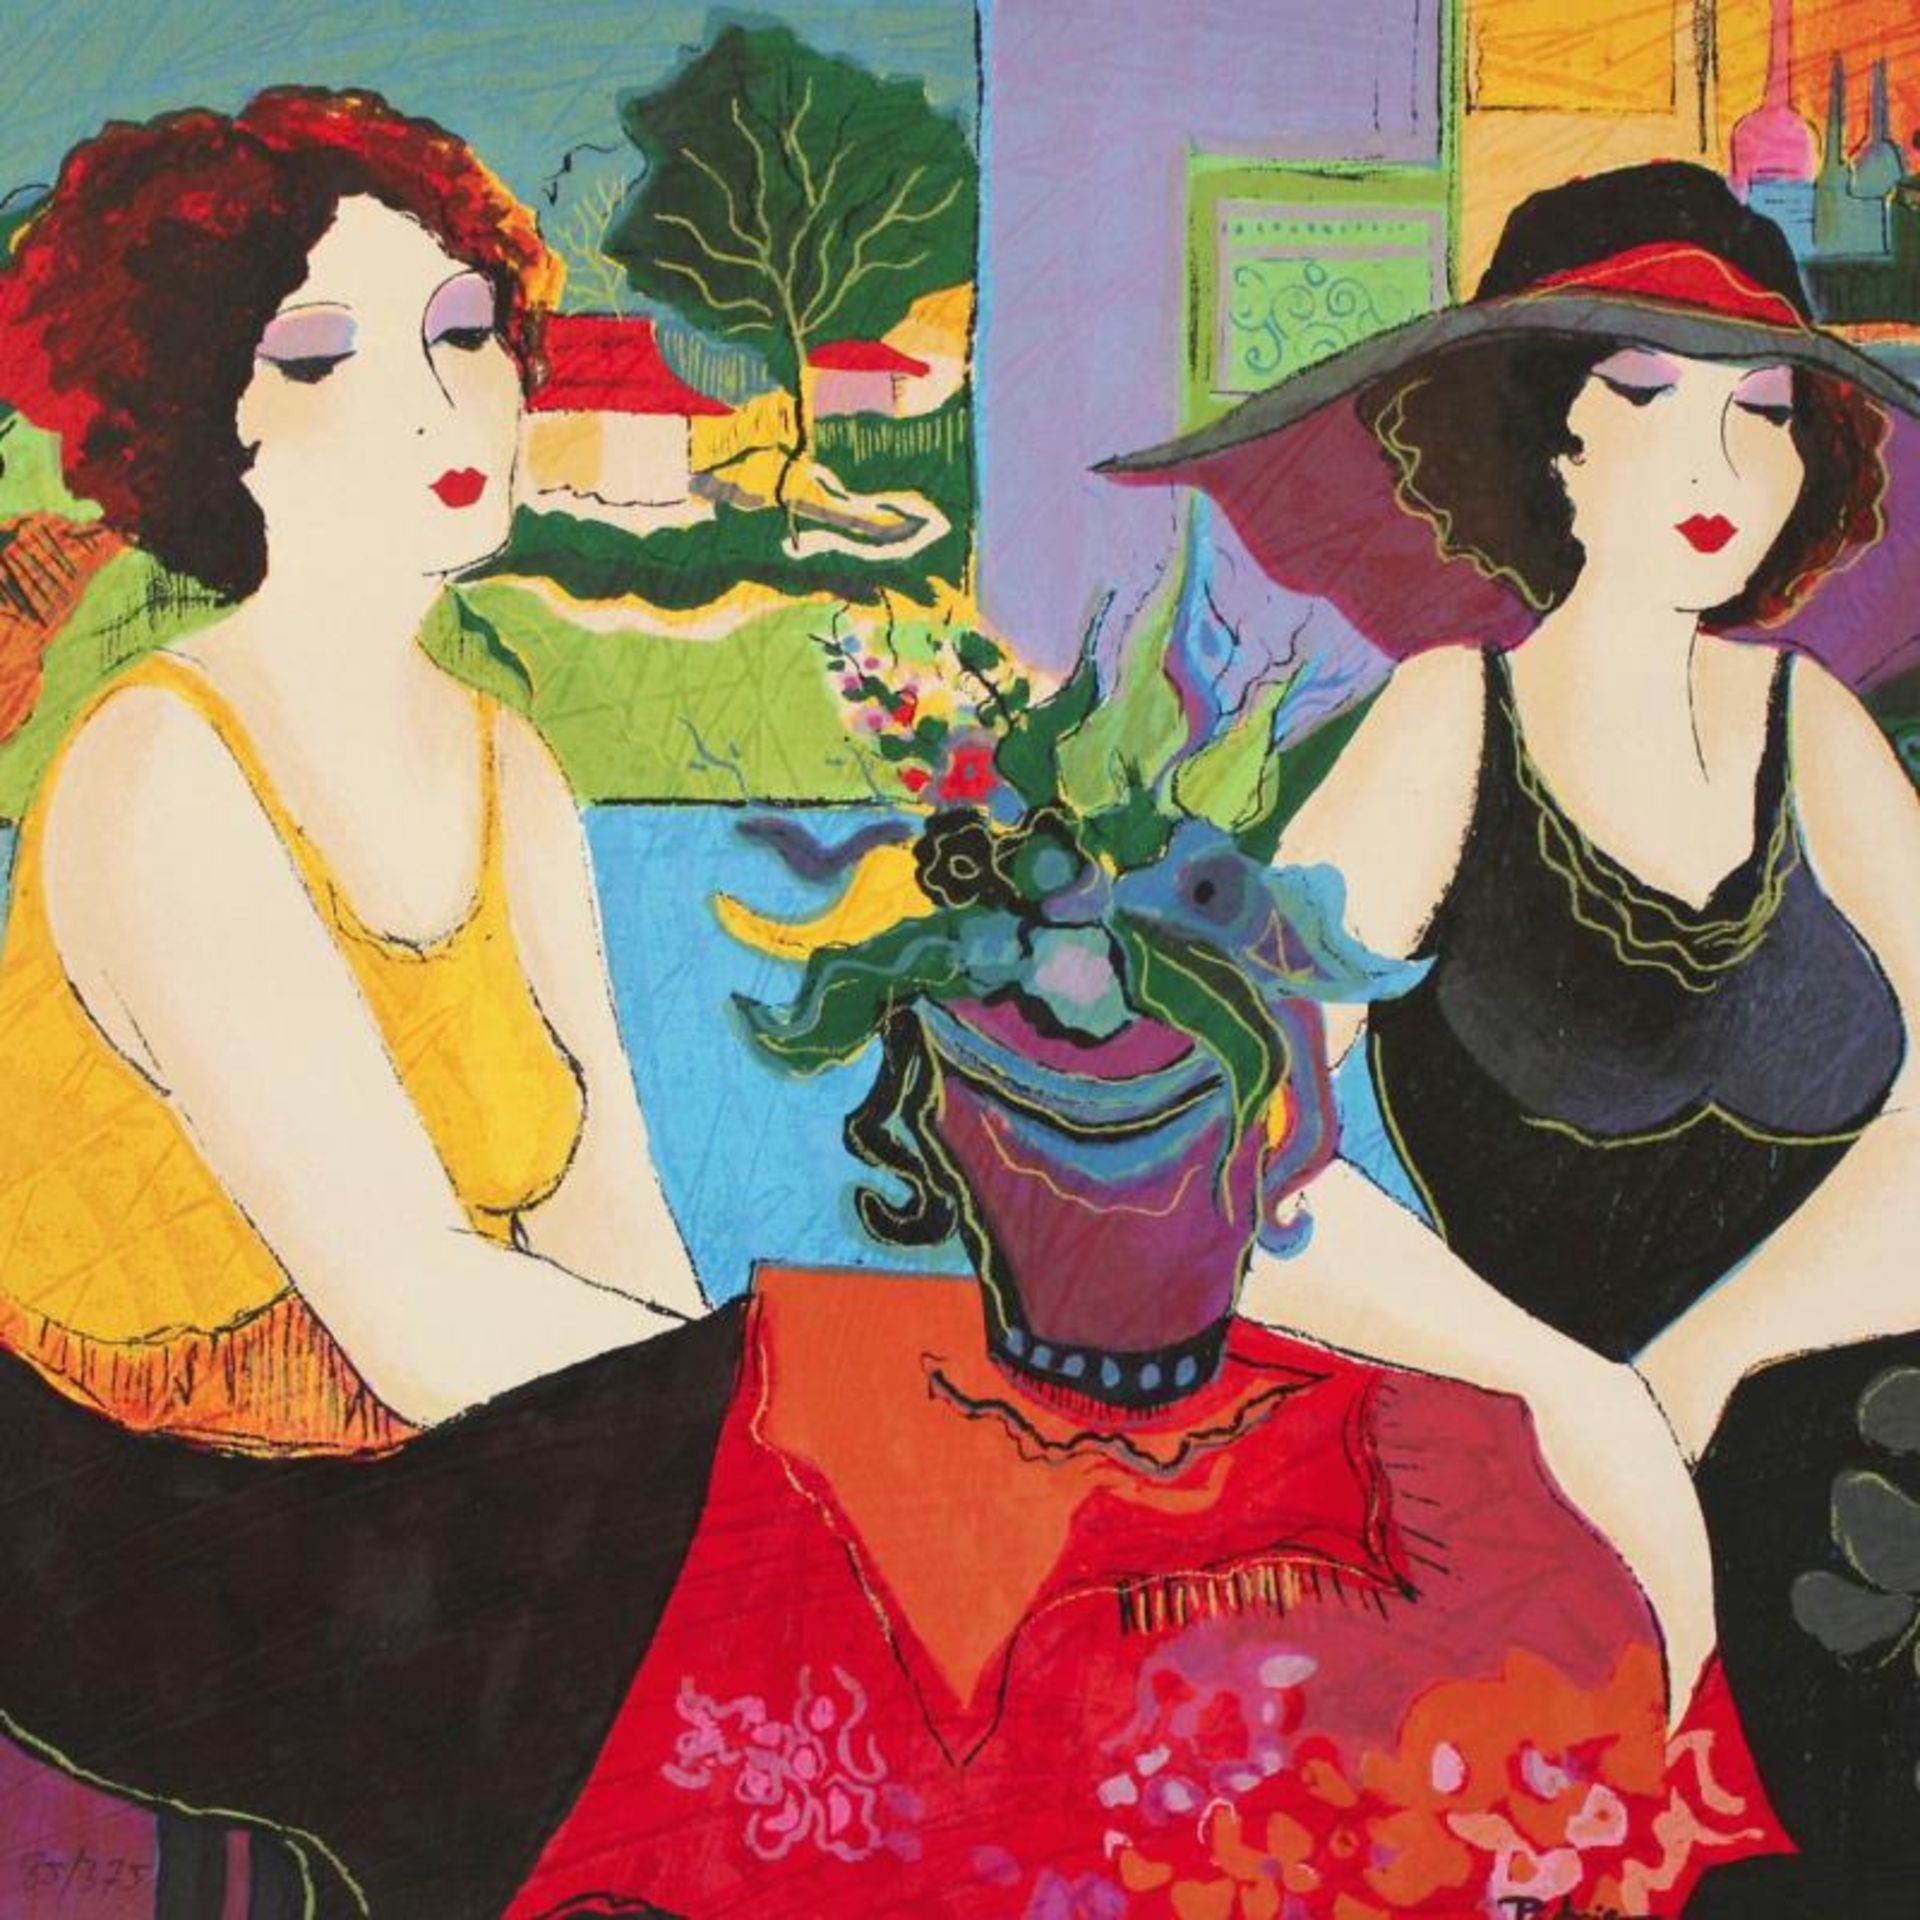 """Patricia Govezensky, """"Esco Bar"""" Hand Signed Limited Edition Serigraph on Canvas - Image 2 of 2"""